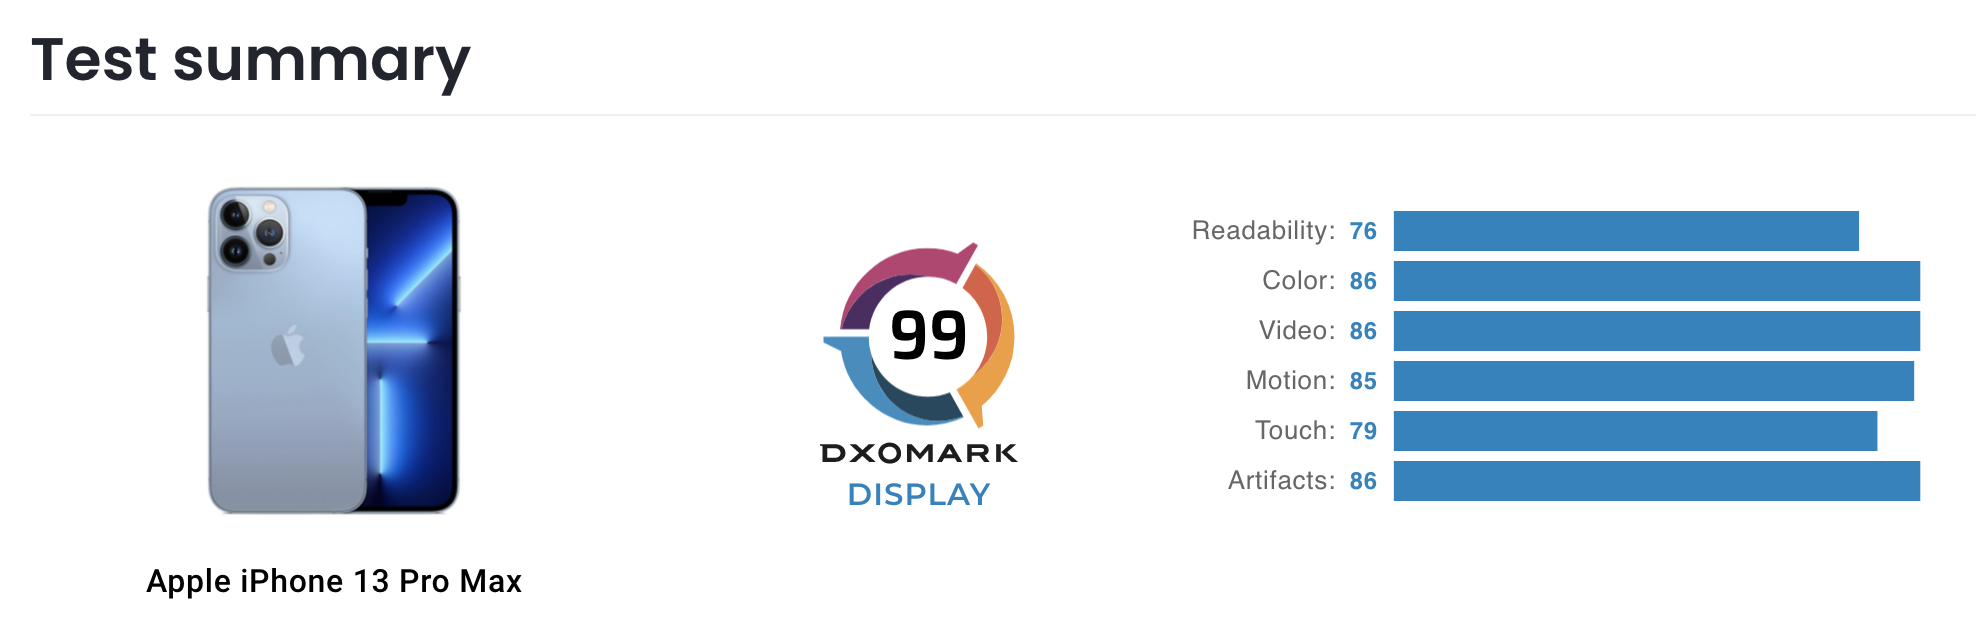 On the top! iPhone 13 Pro Max surpasses Huawei P50 and leads DxOMark's screen ranking 1